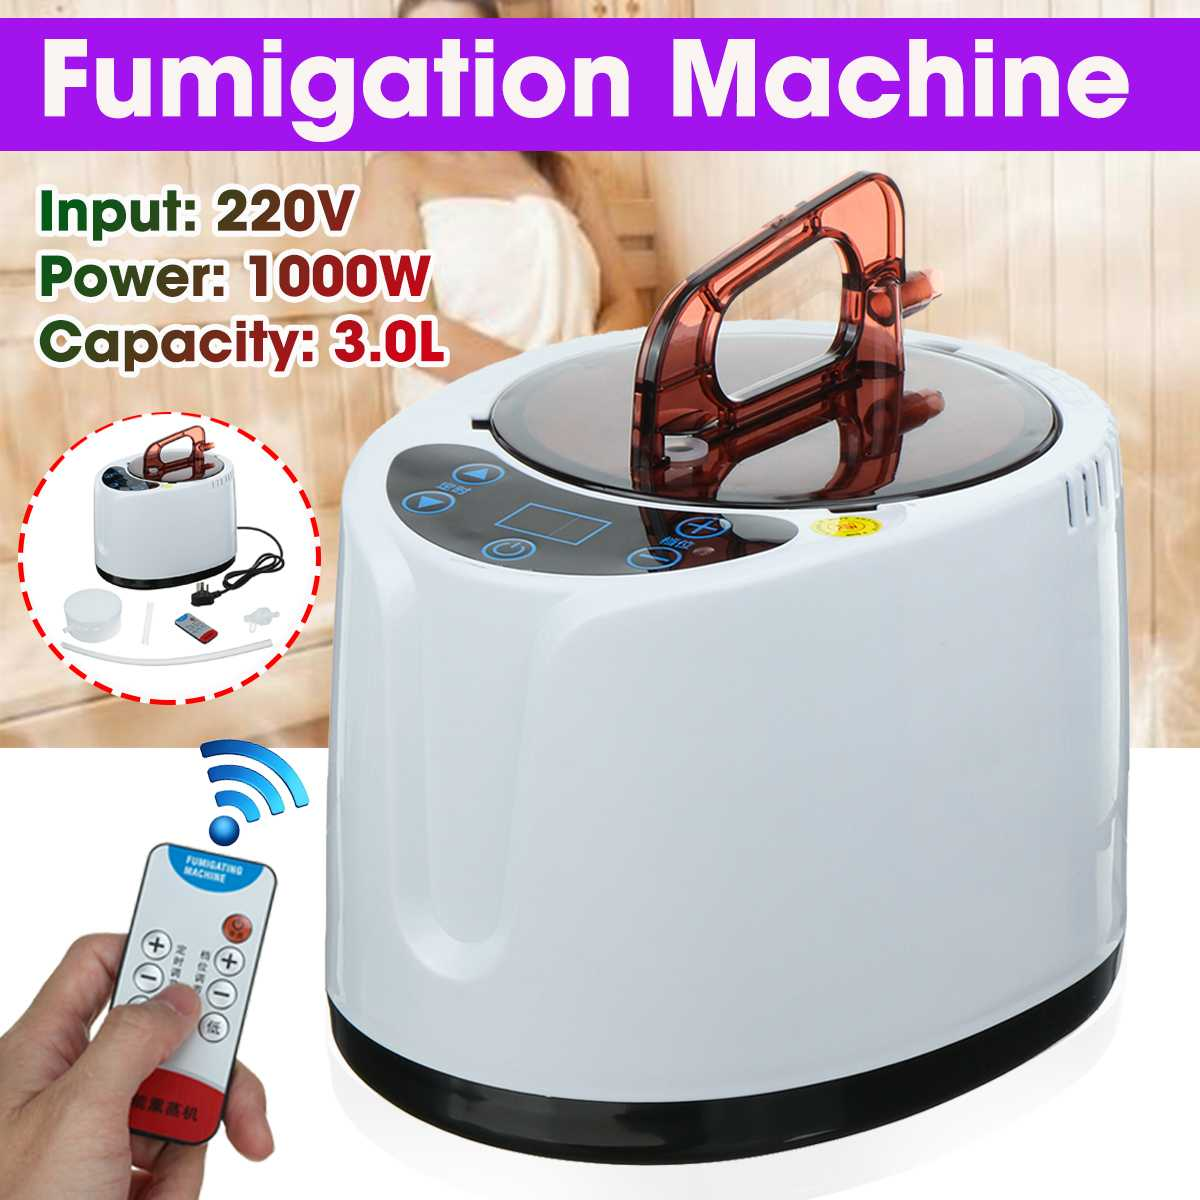 3.0L Sauna Steam Generator For Sauna Spa Tent Body Therapy Fumigation Machine Home Steamer Therapy Suitable For Kitchen 220V